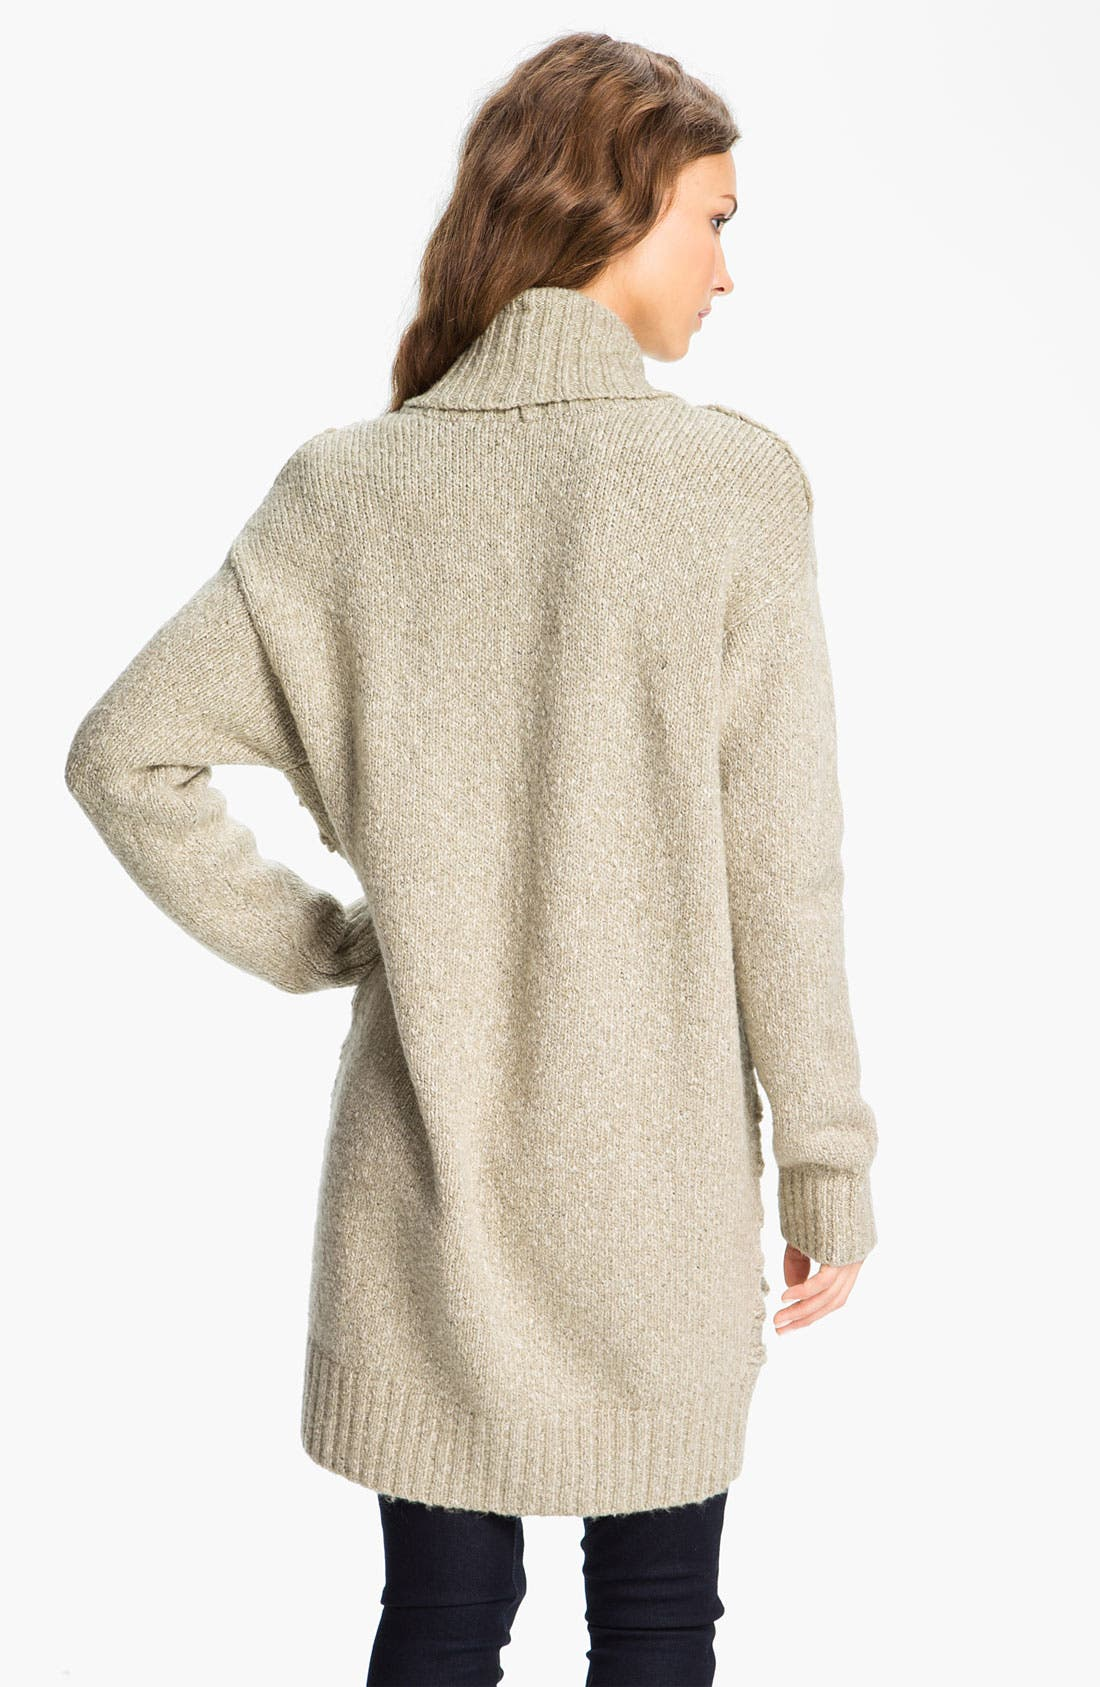 Scallop Knit Oversized Cardigan,                             Alternate thumbnail 2, color,                             Stone Cobbler